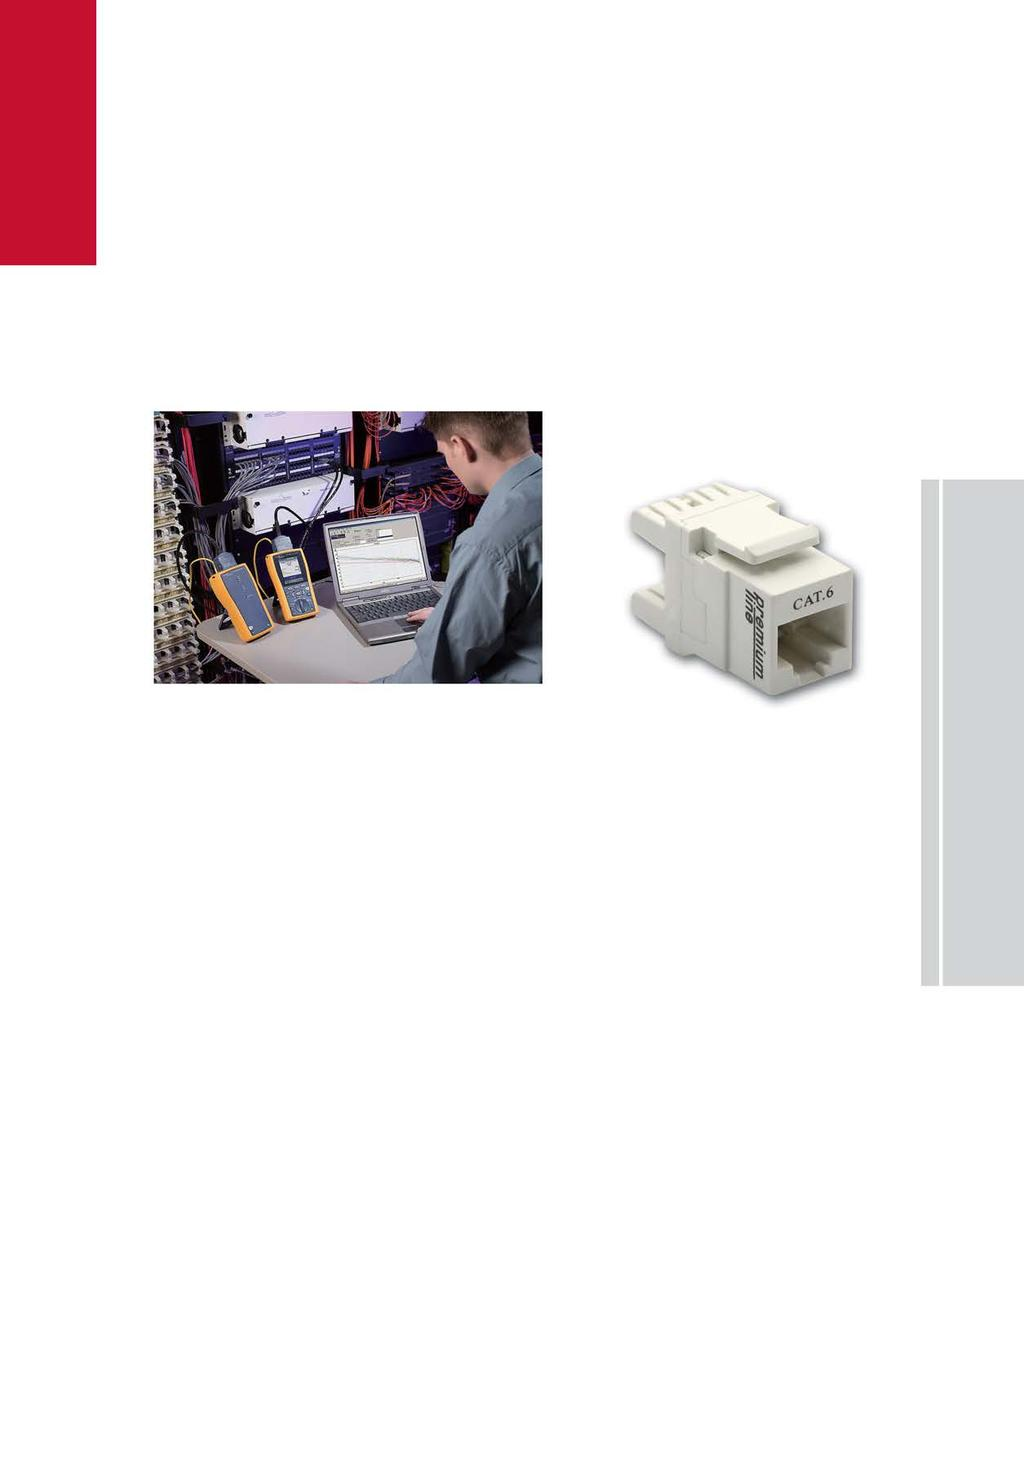 Pdf Kinds Of Keystone Jackpatch Panelwiring Blockfaceplate And So On Jack Category 6 90 Unshielded Cabling Solutions